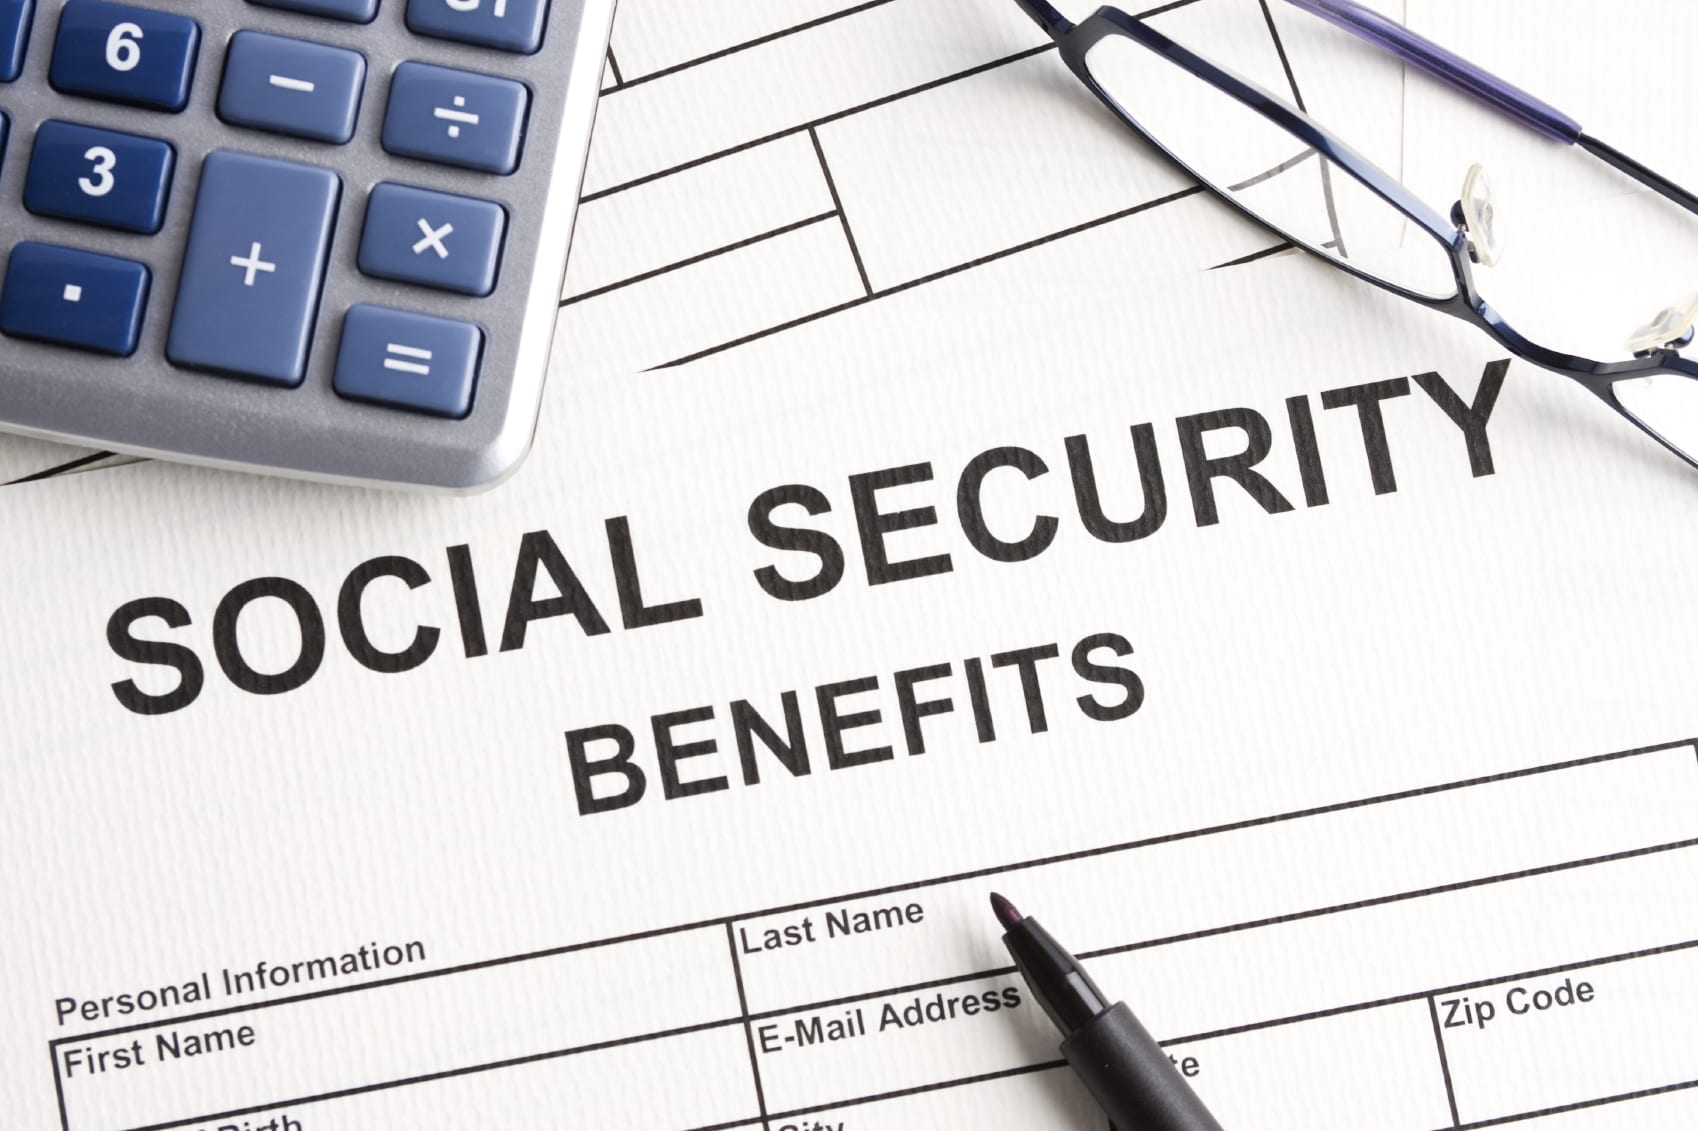 Blank Social Security Benefits Form Stock Photo